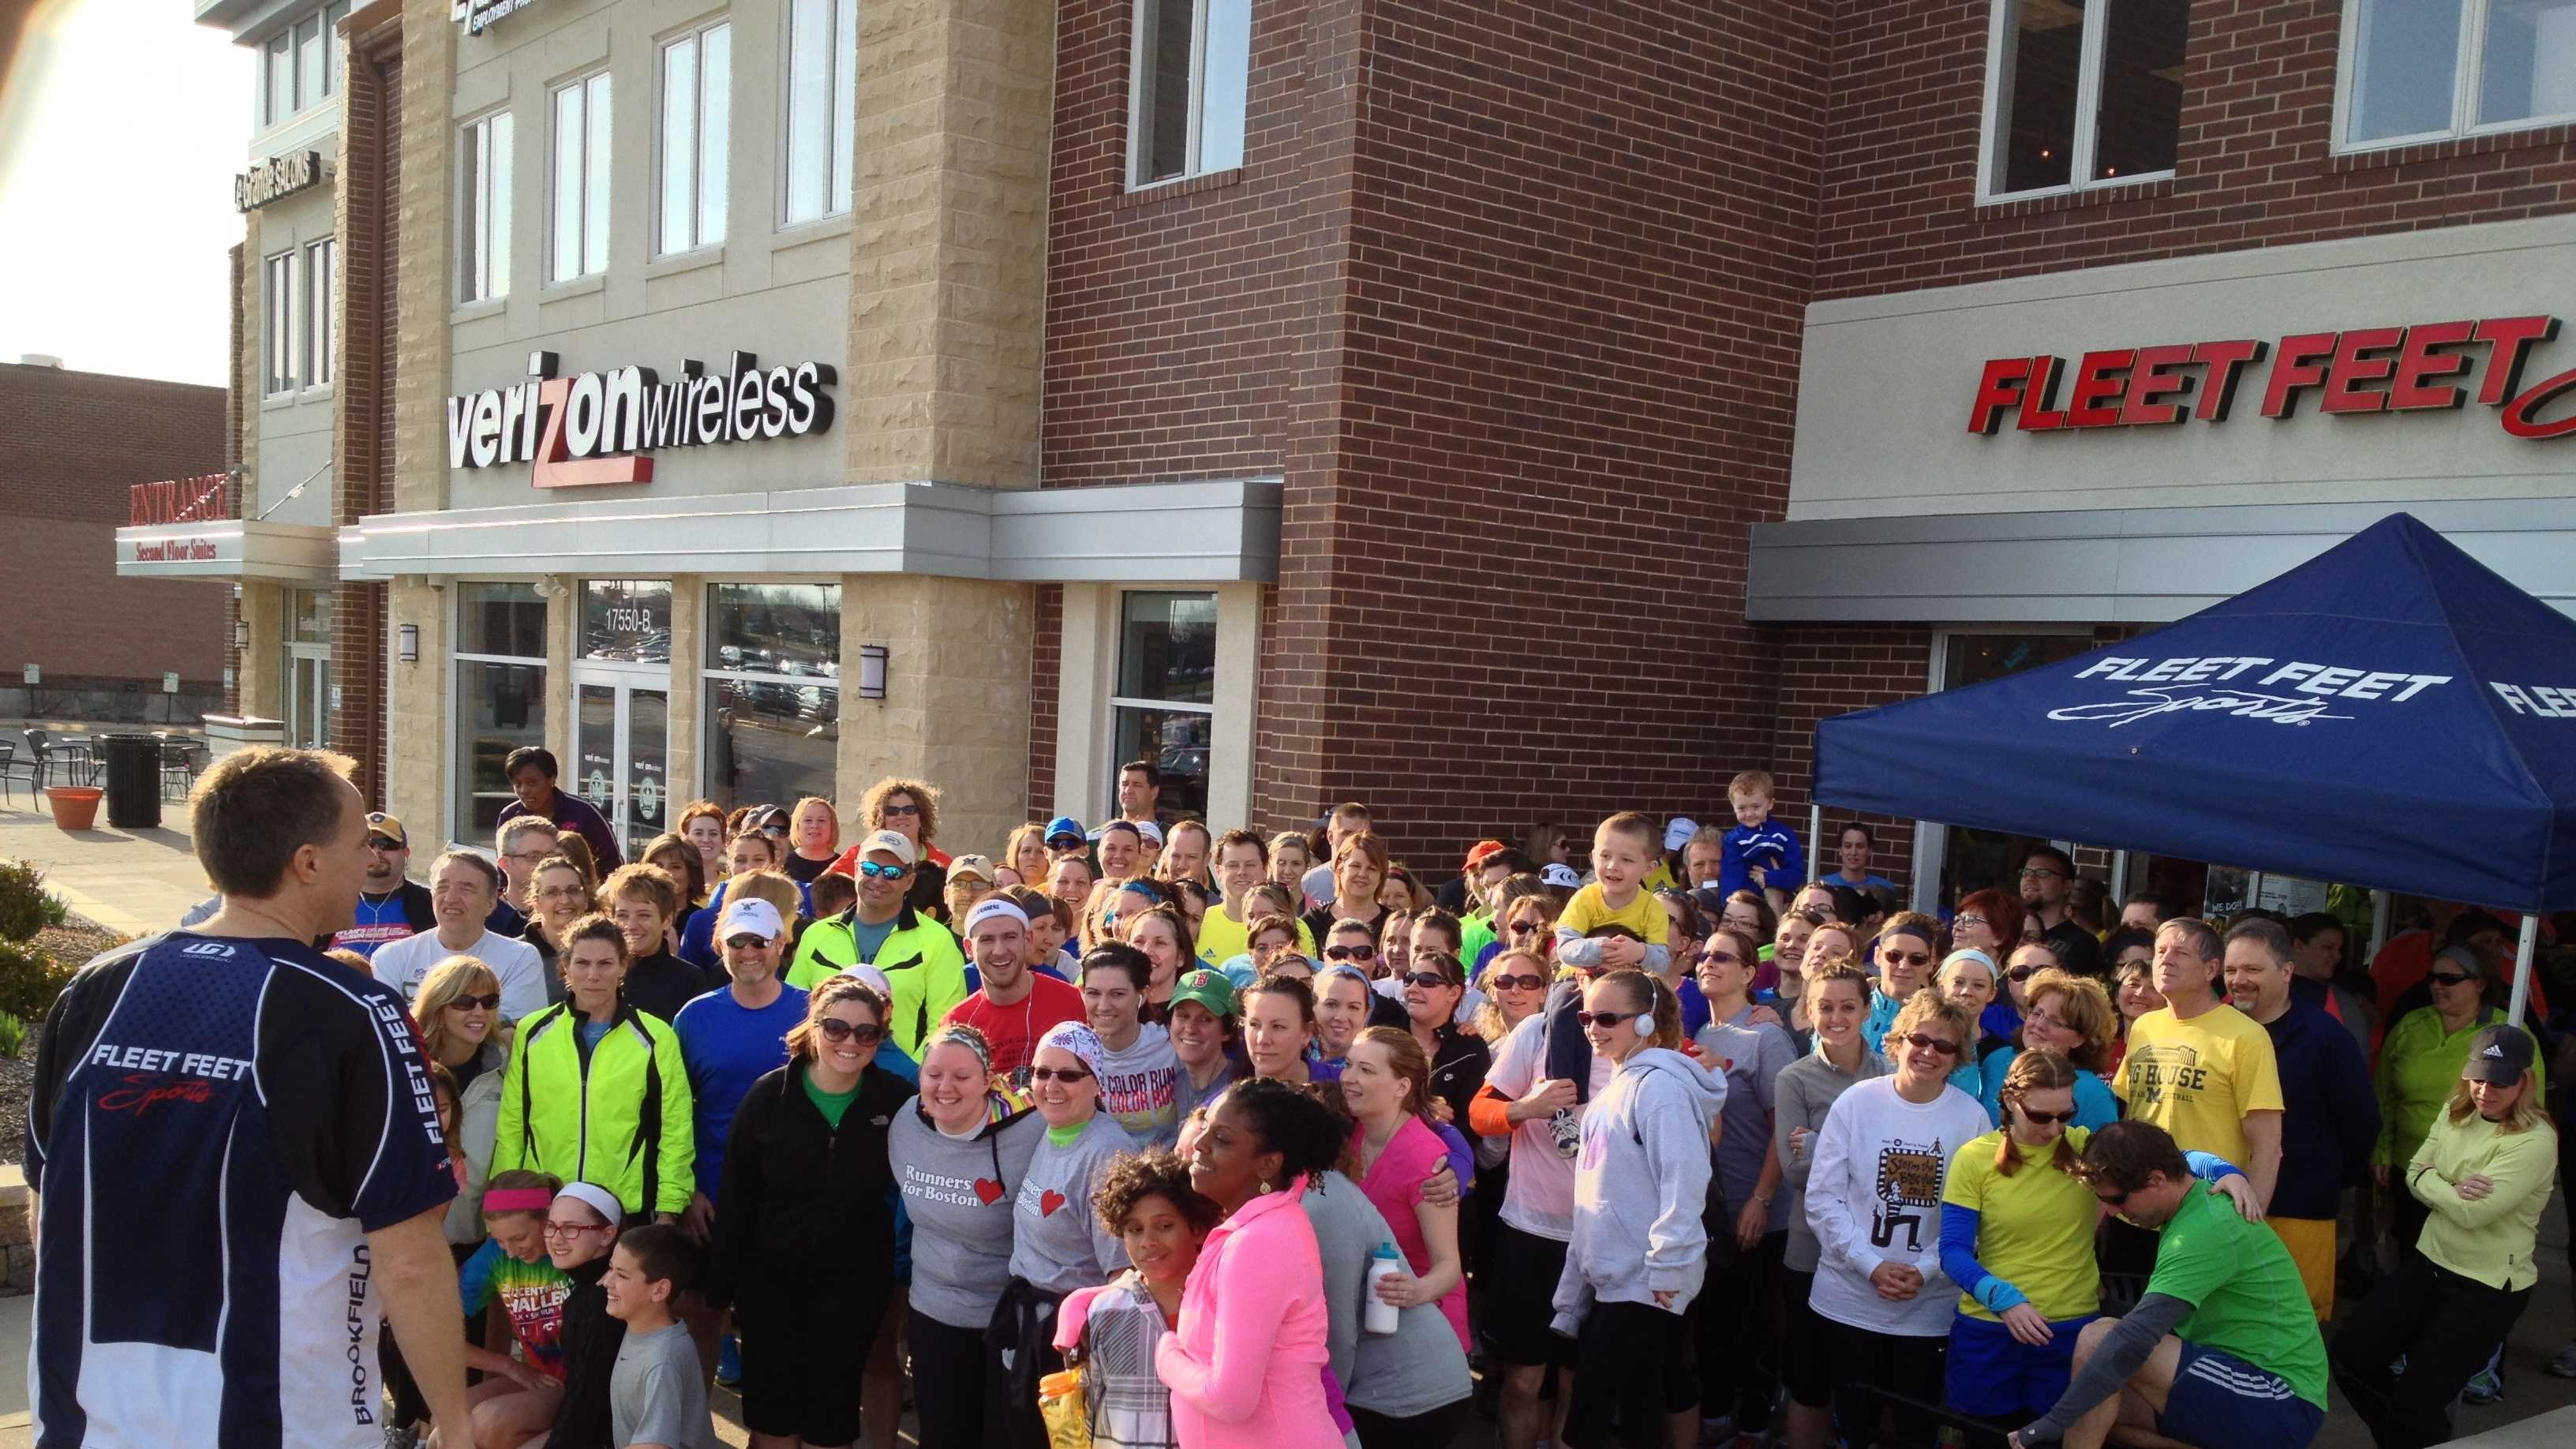 Runners gather for Fleet Feet Sports 5k run, benefiting One Fund Boston